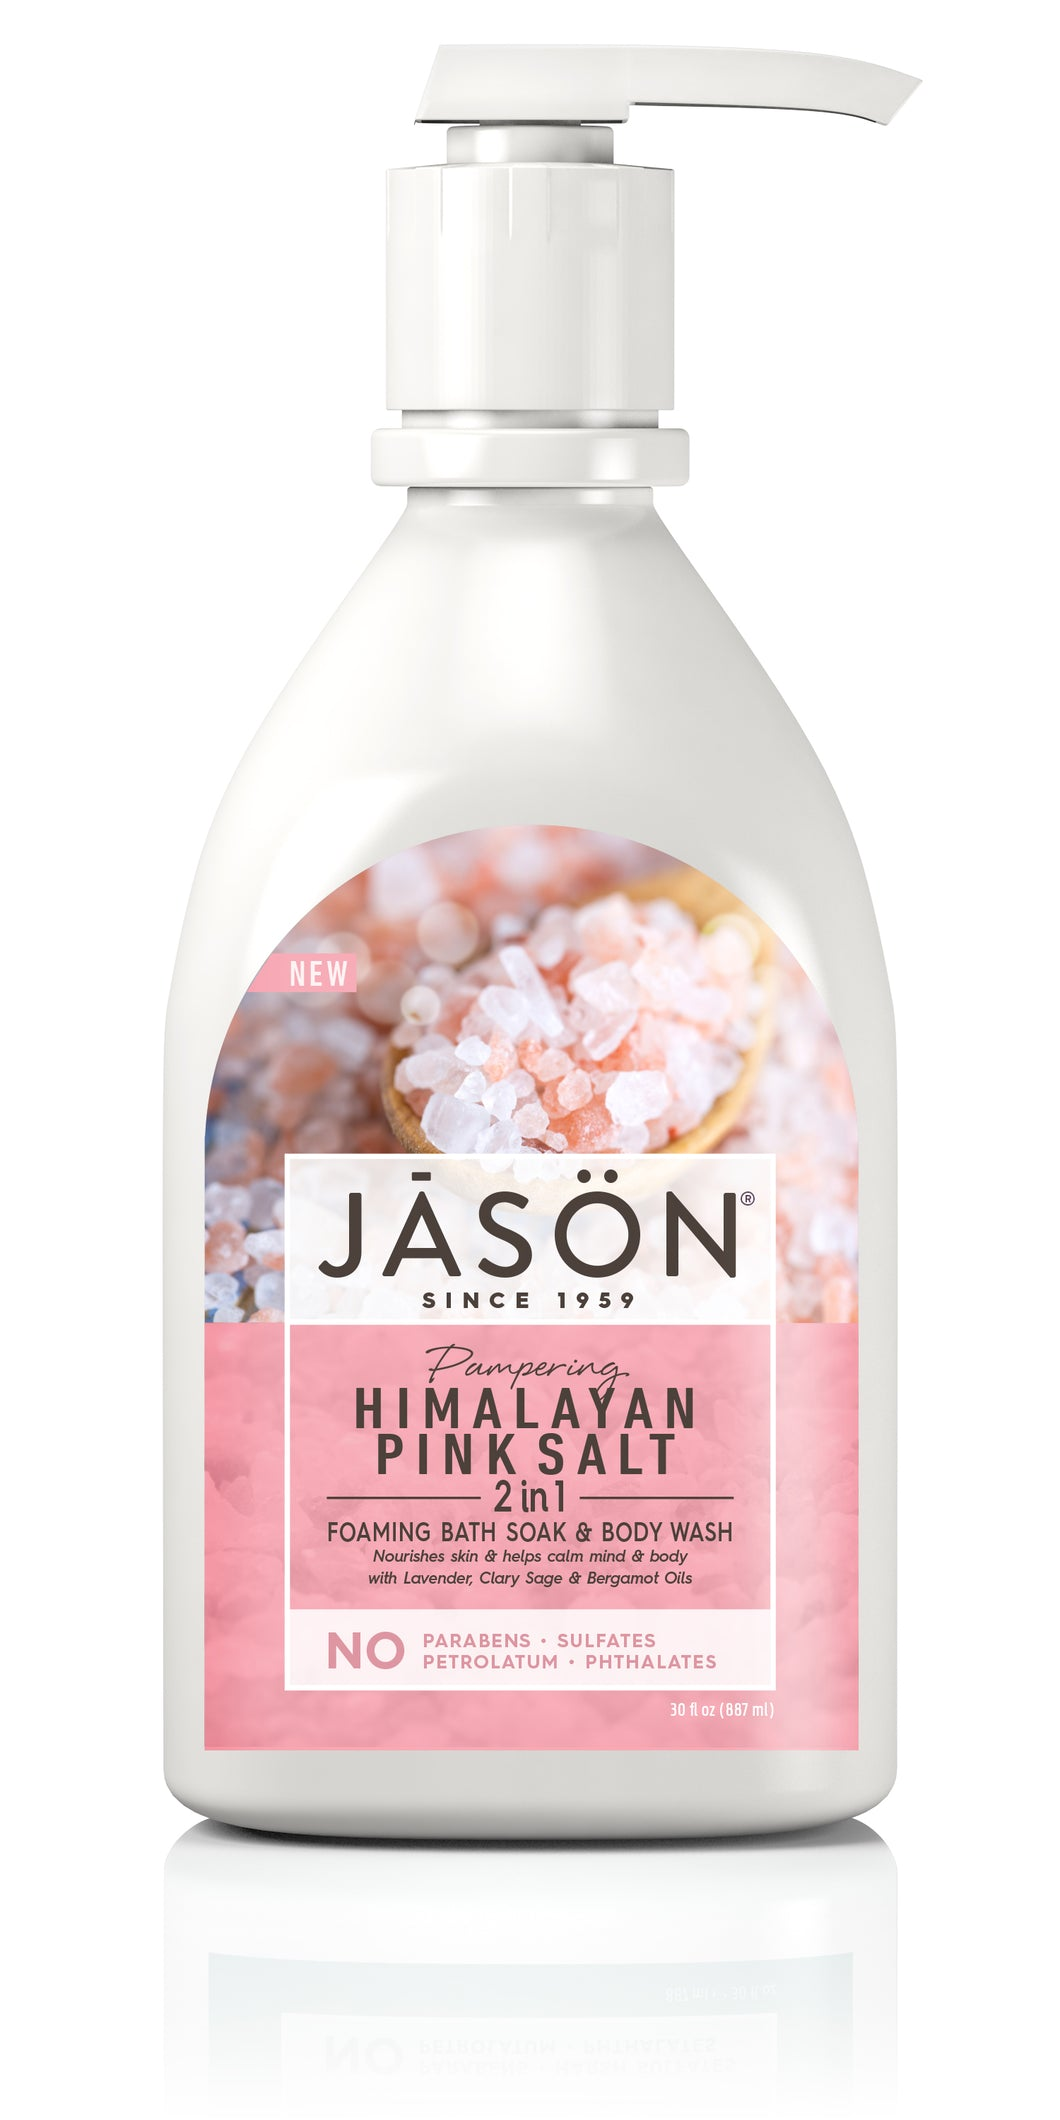 Pampering  Himalayan Pink Salt 2-in-1 Foaming Bath Soak & Body Wash